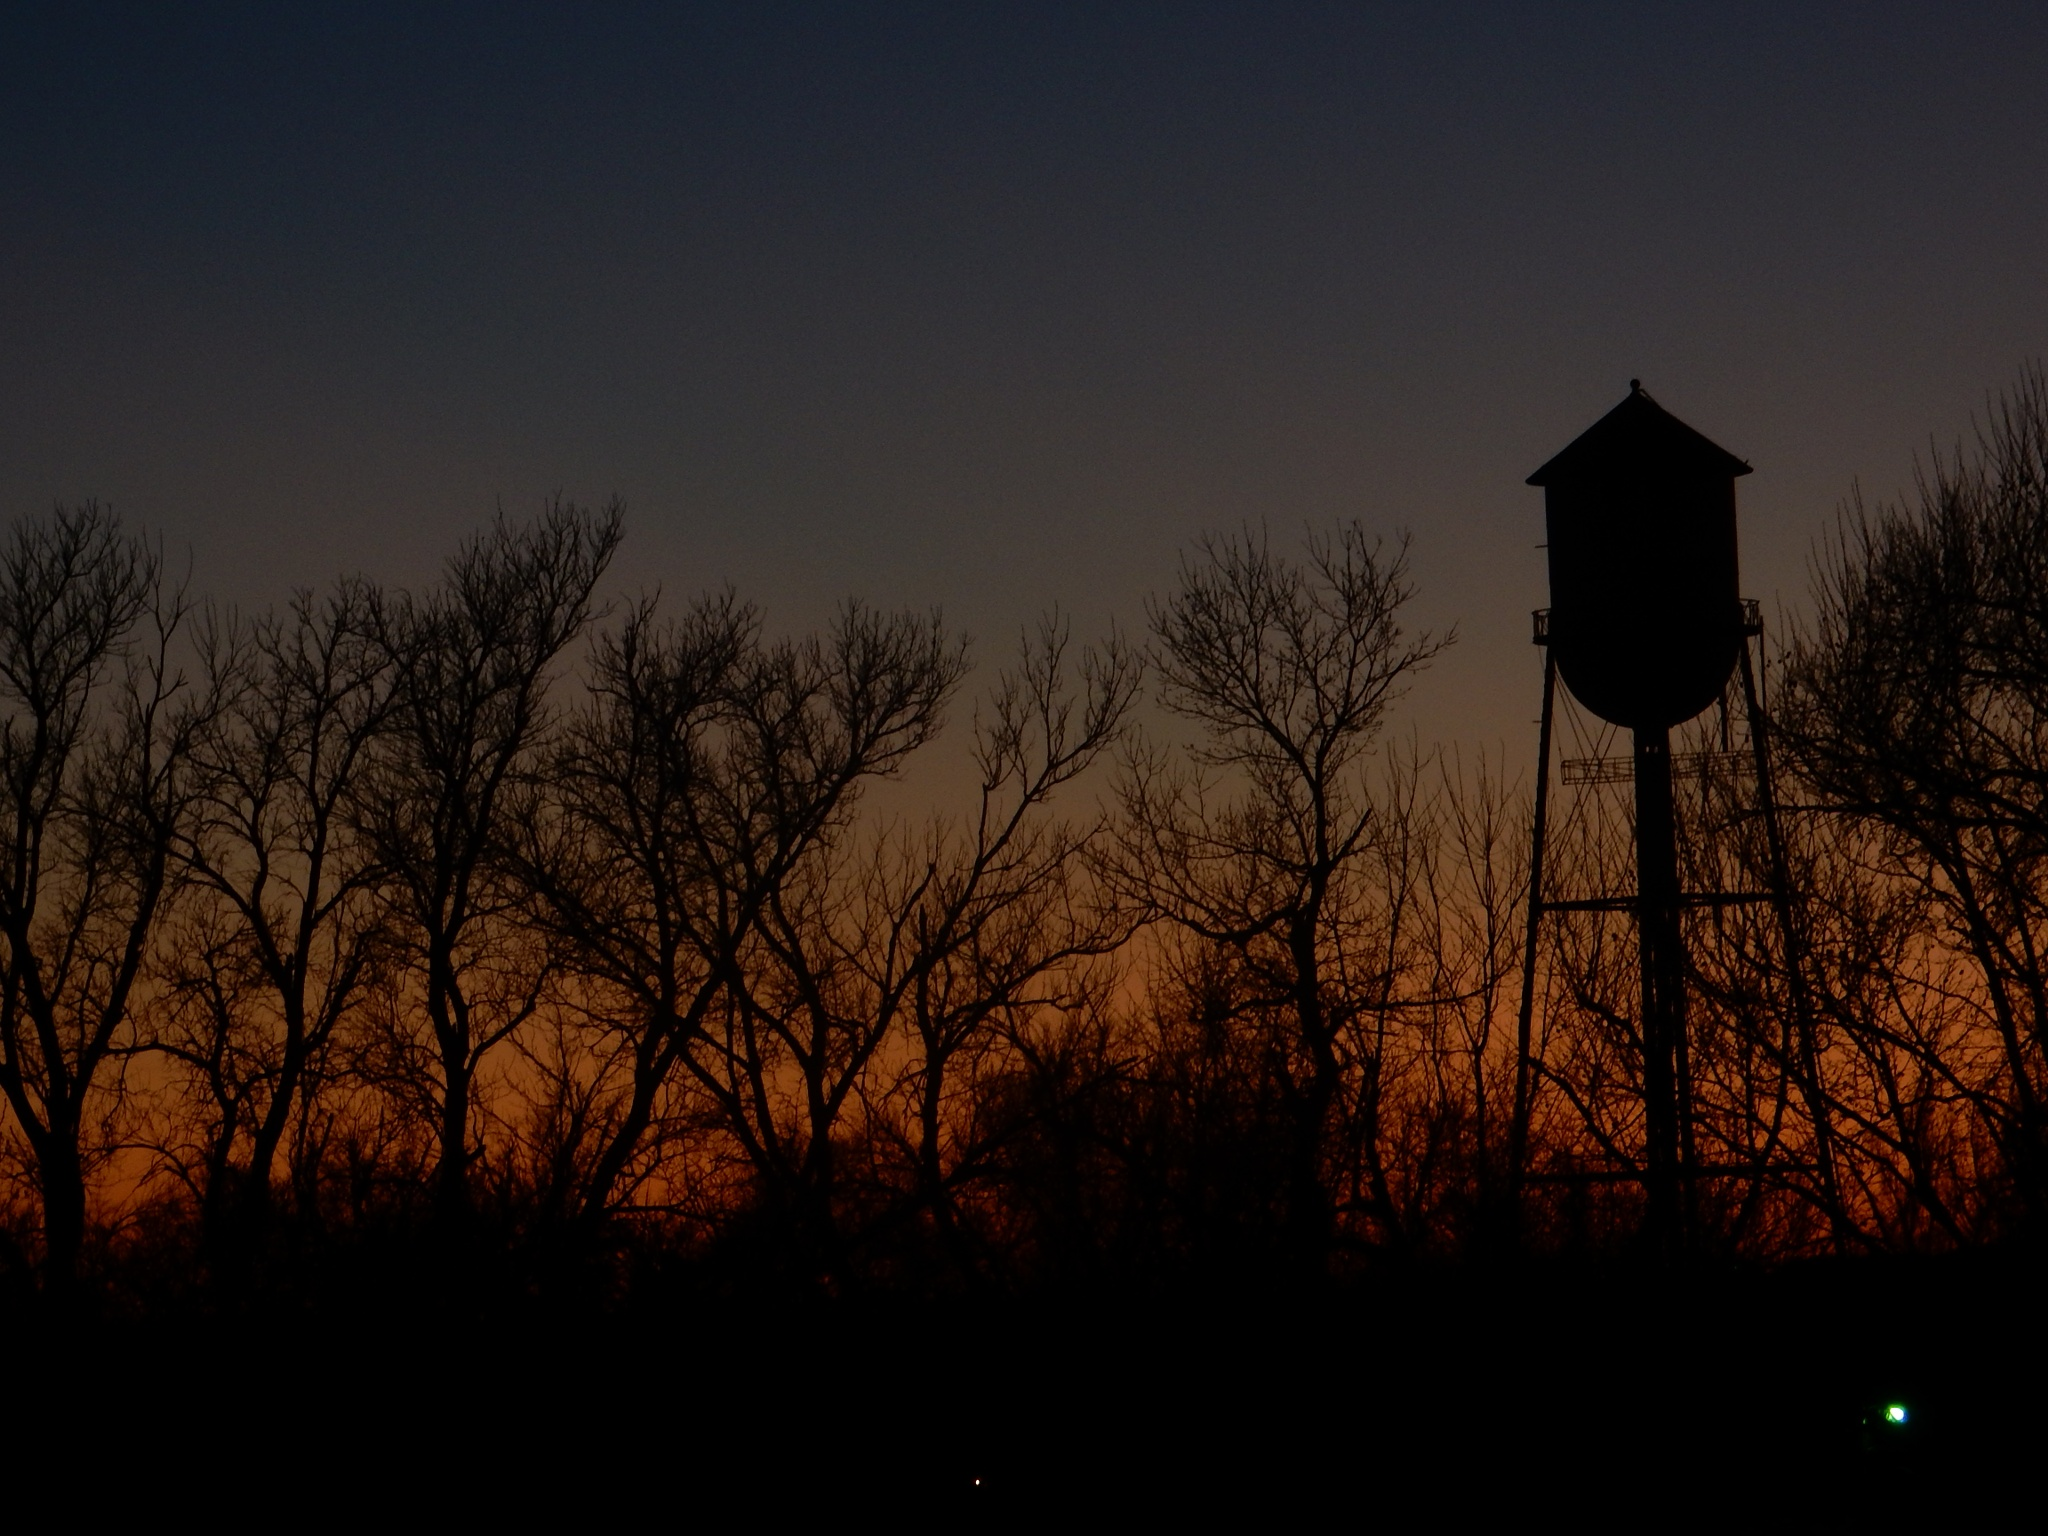 12-23-15 sunset oklahooma by roughneck1-9